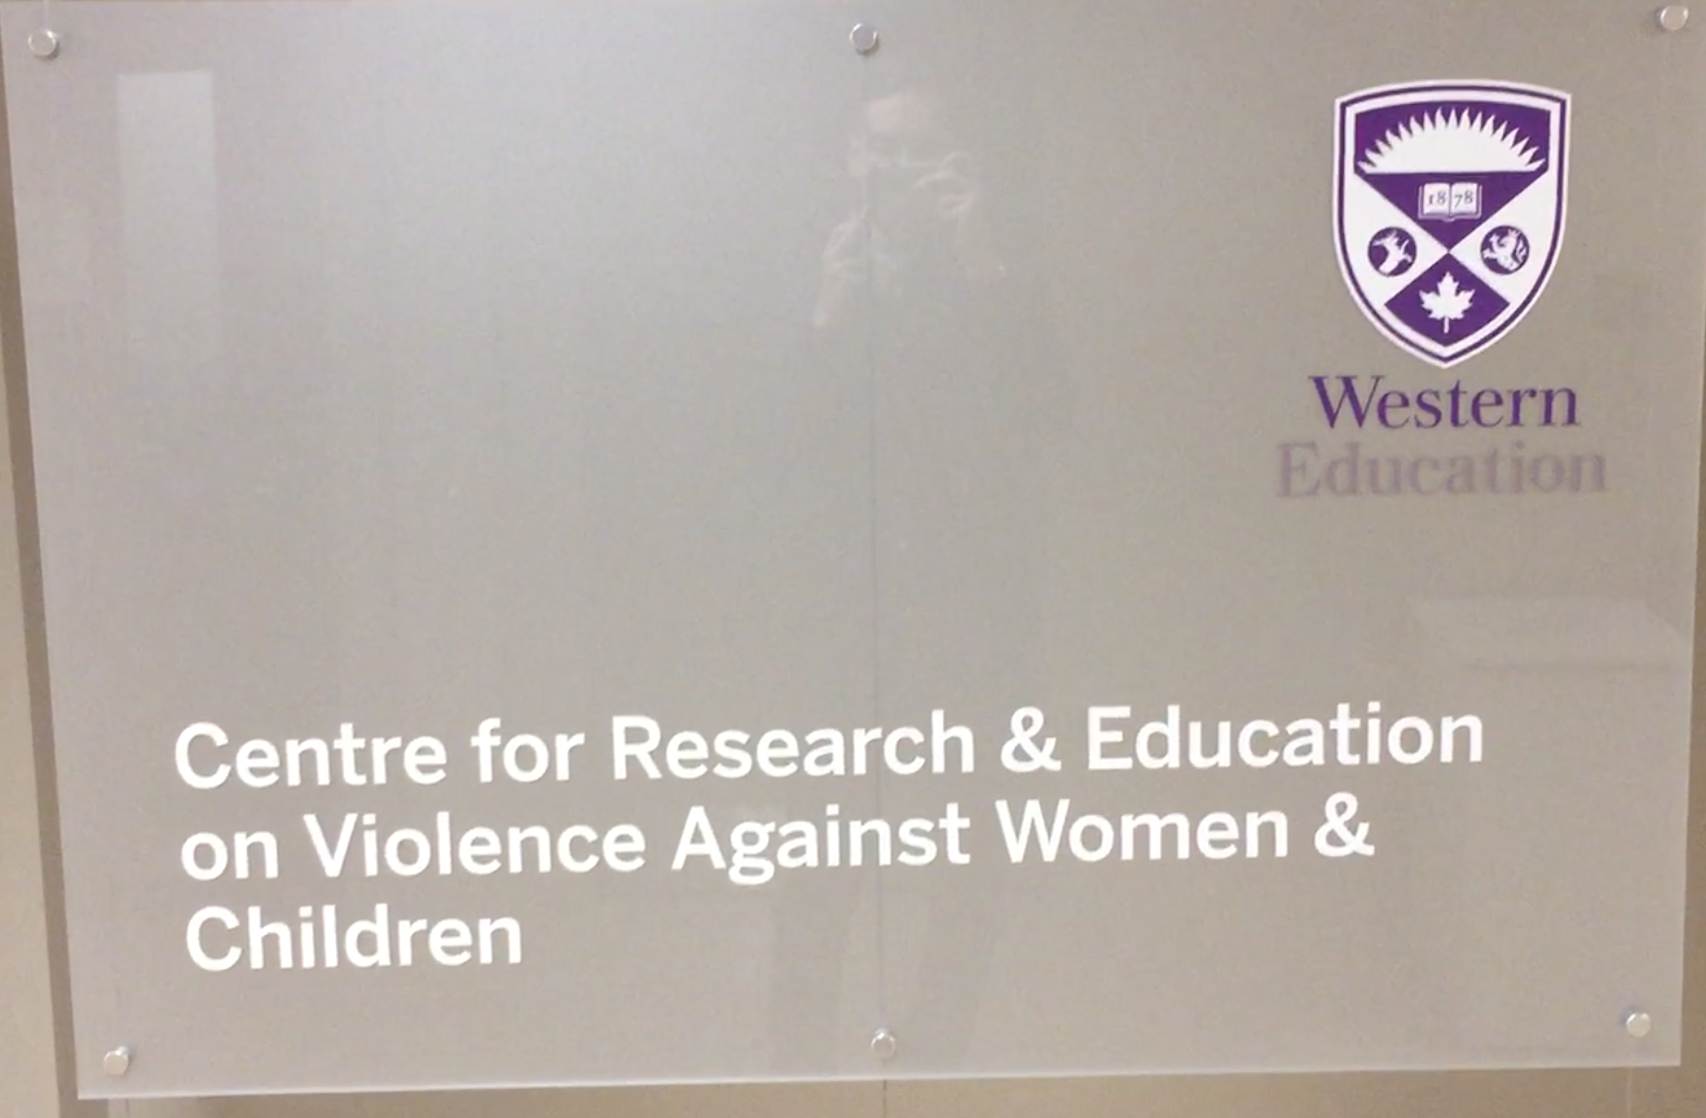 London emerging as a leader in domestic violence prevention and education